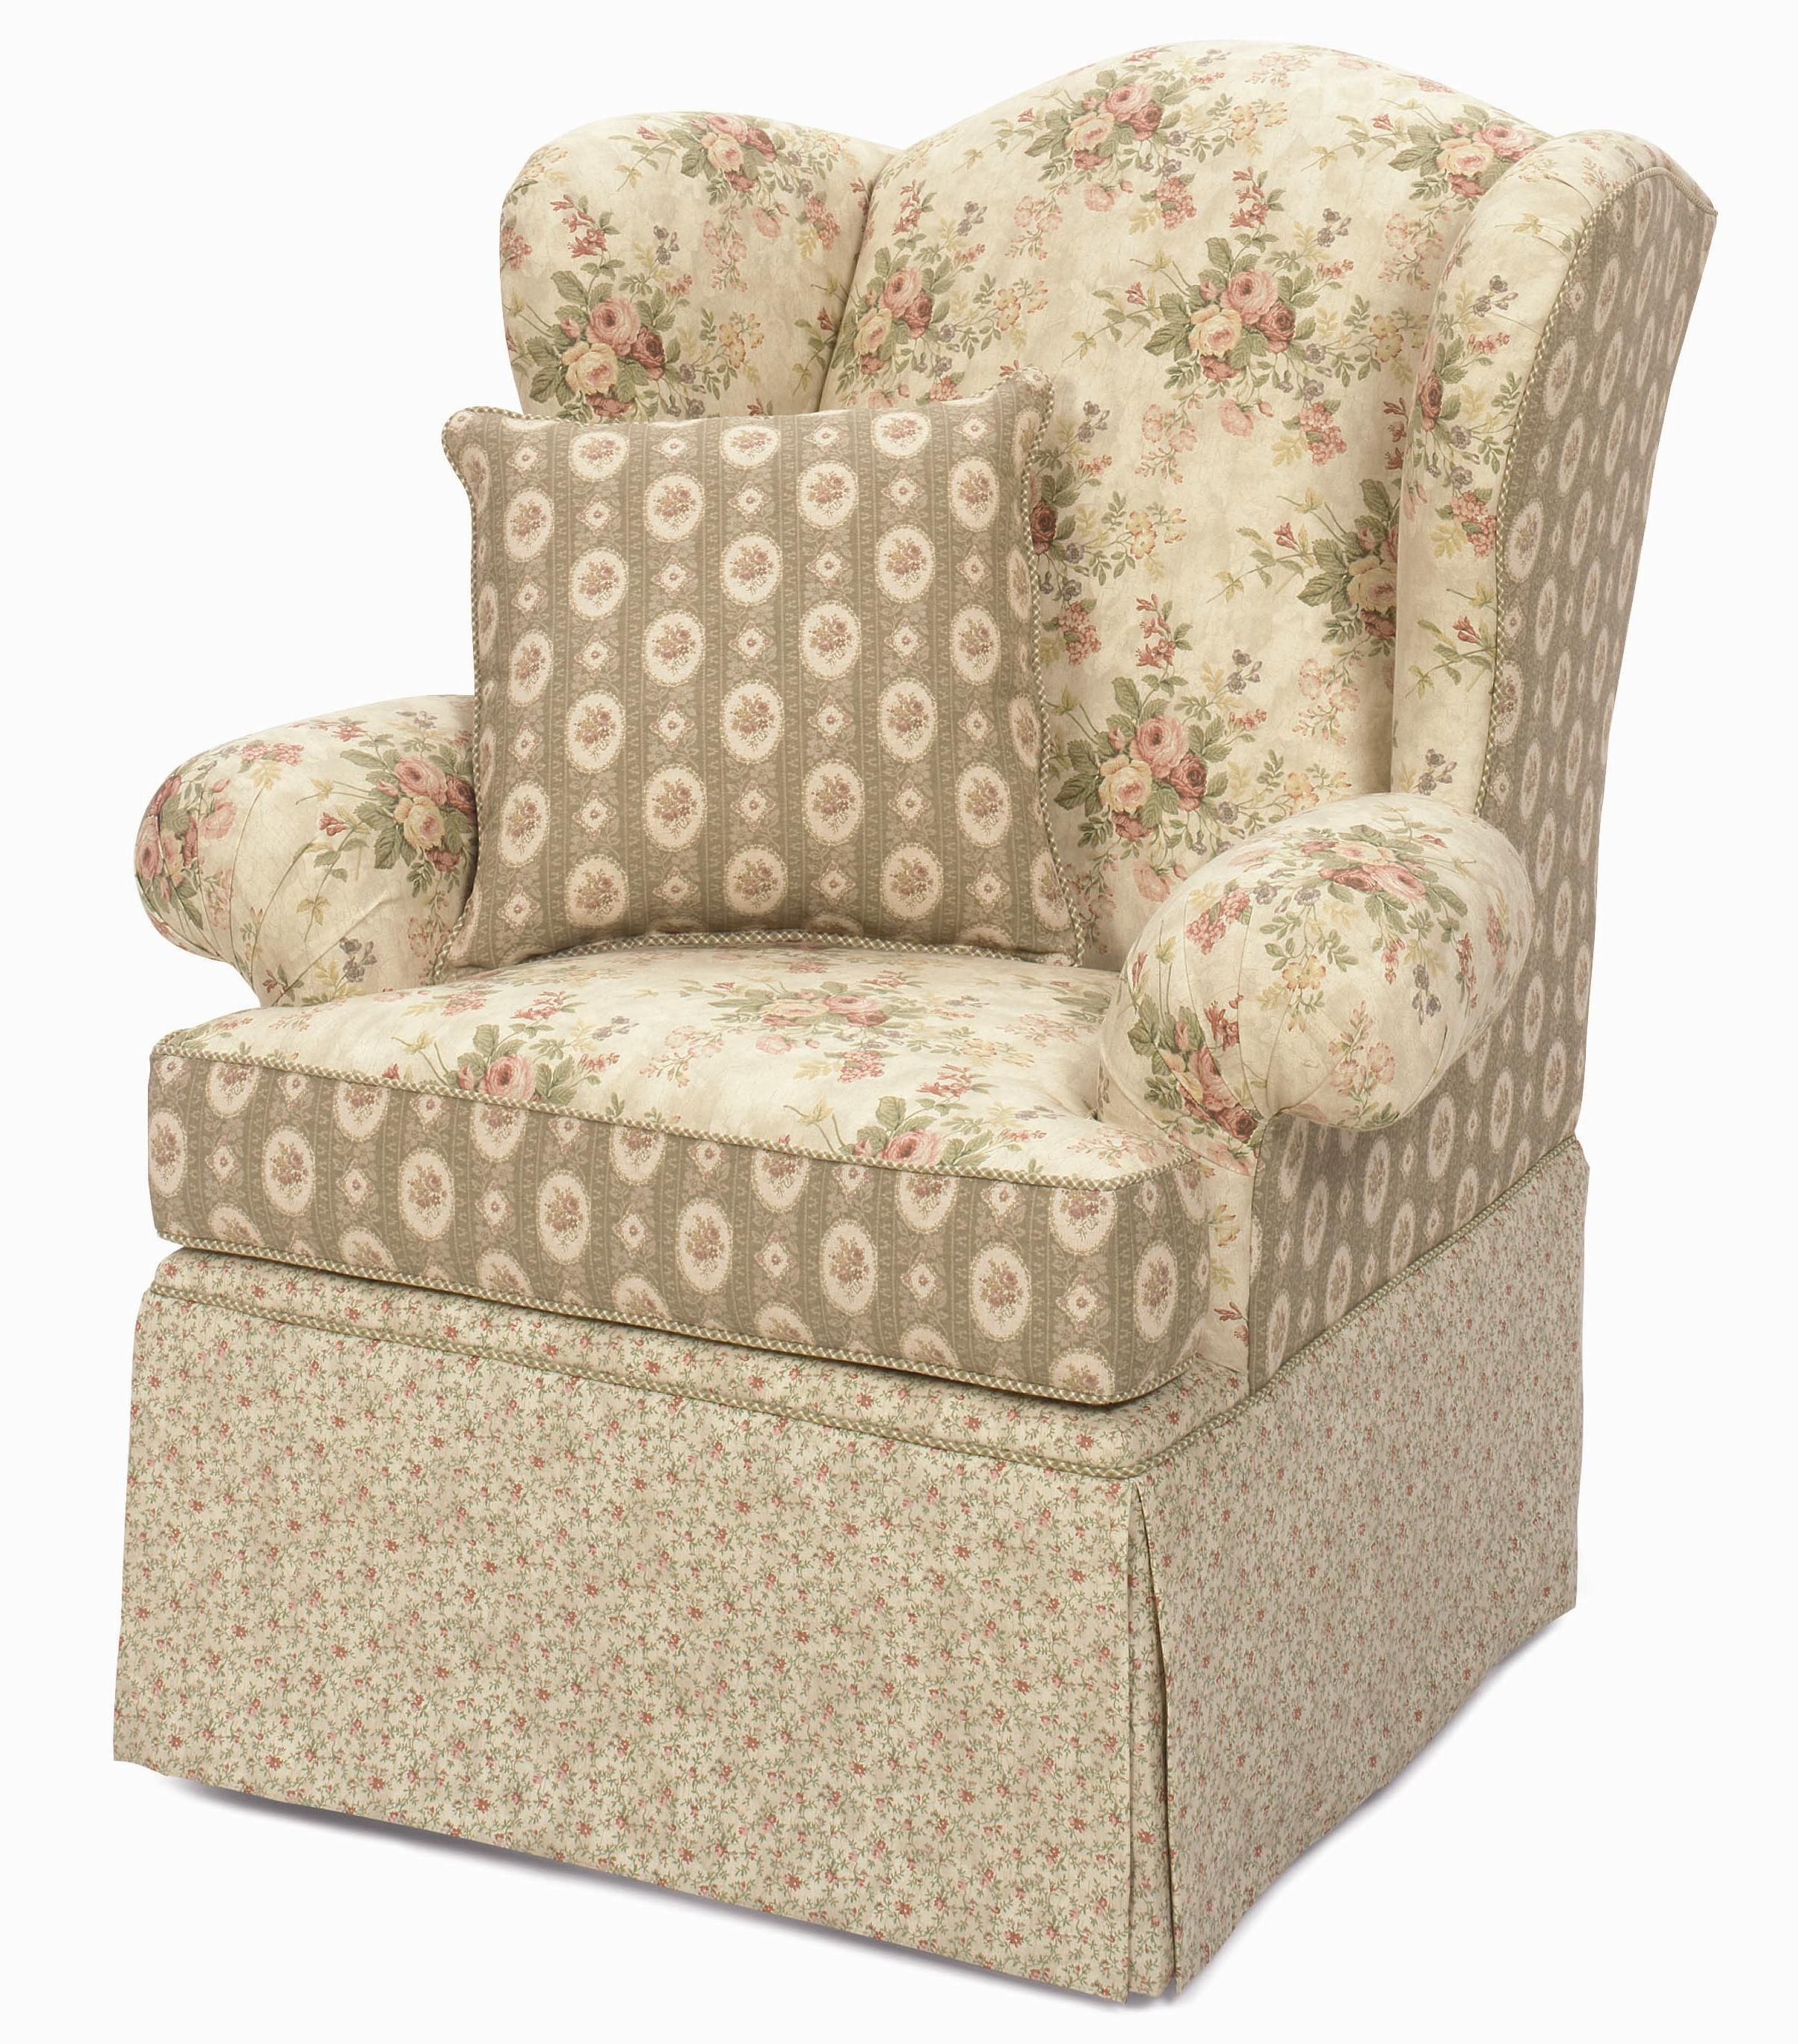 Craftmaster Accent Chairs Upholstered Wing Back Chair With Skirted Base At Riverview Galleries Part Of The Upholstered Chairs Wholesale Furniture Accent Chairs